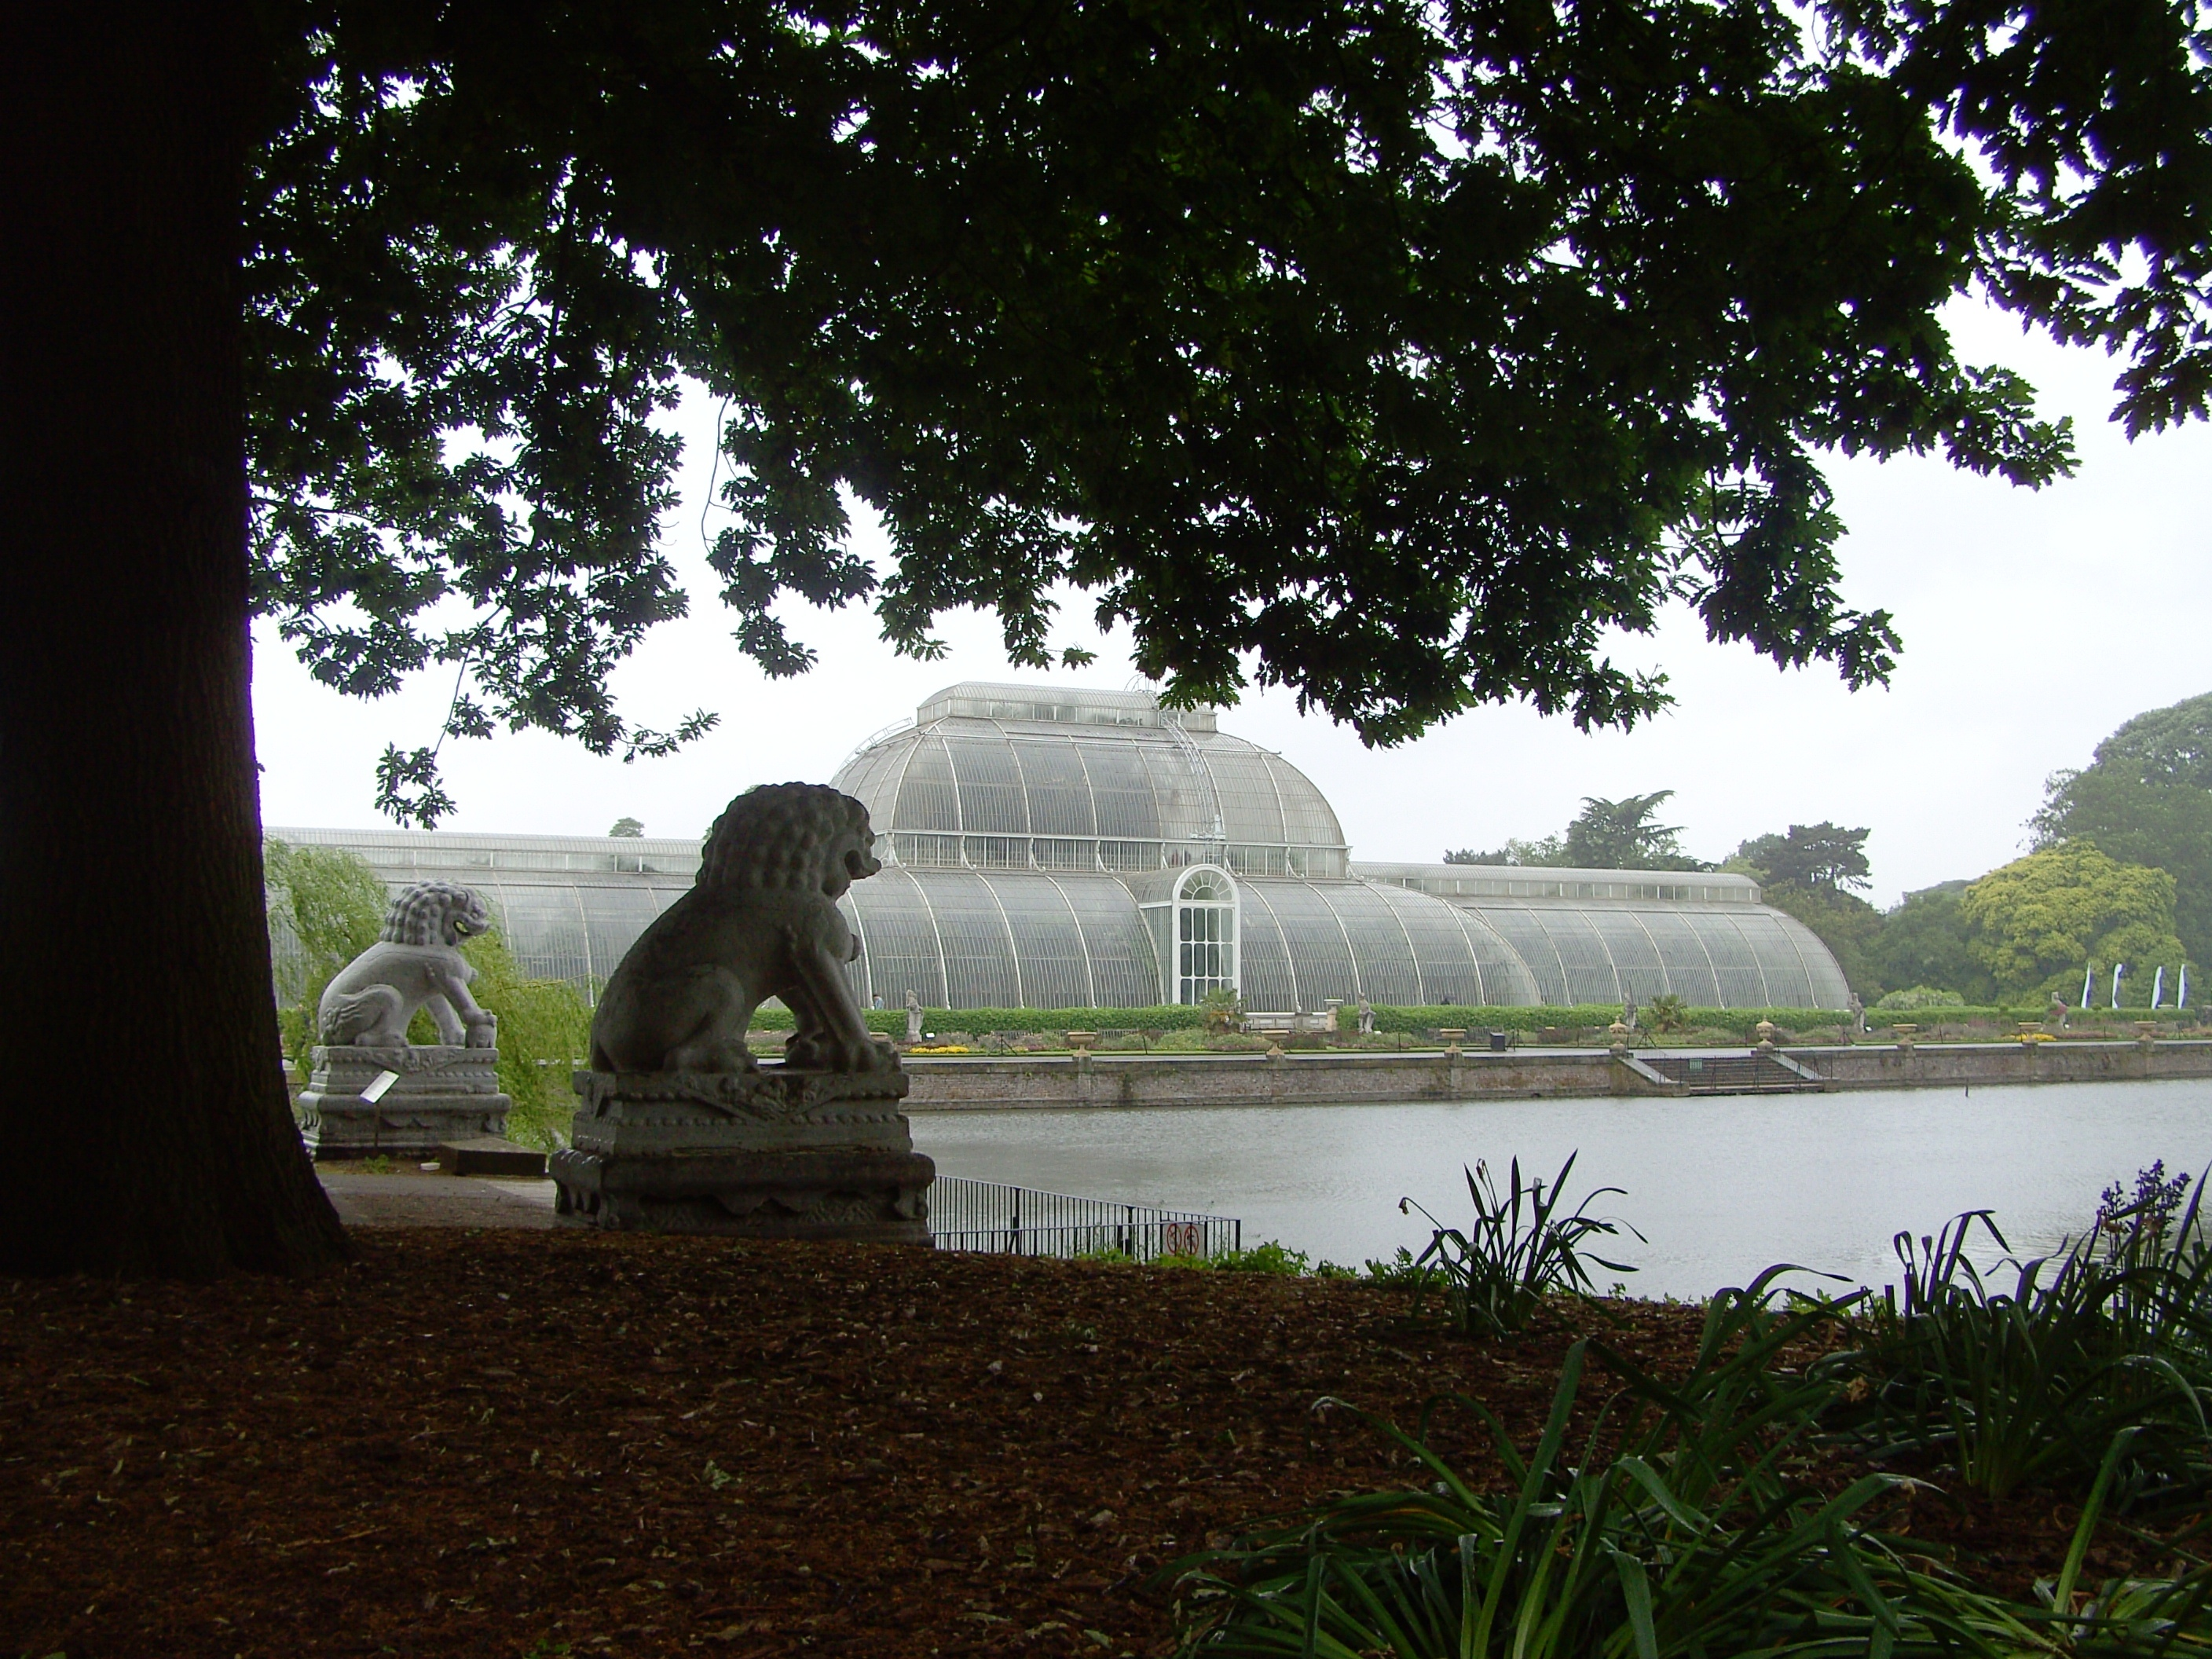 Decimus Burton and Richard Turner's Palm House Kew Gardens